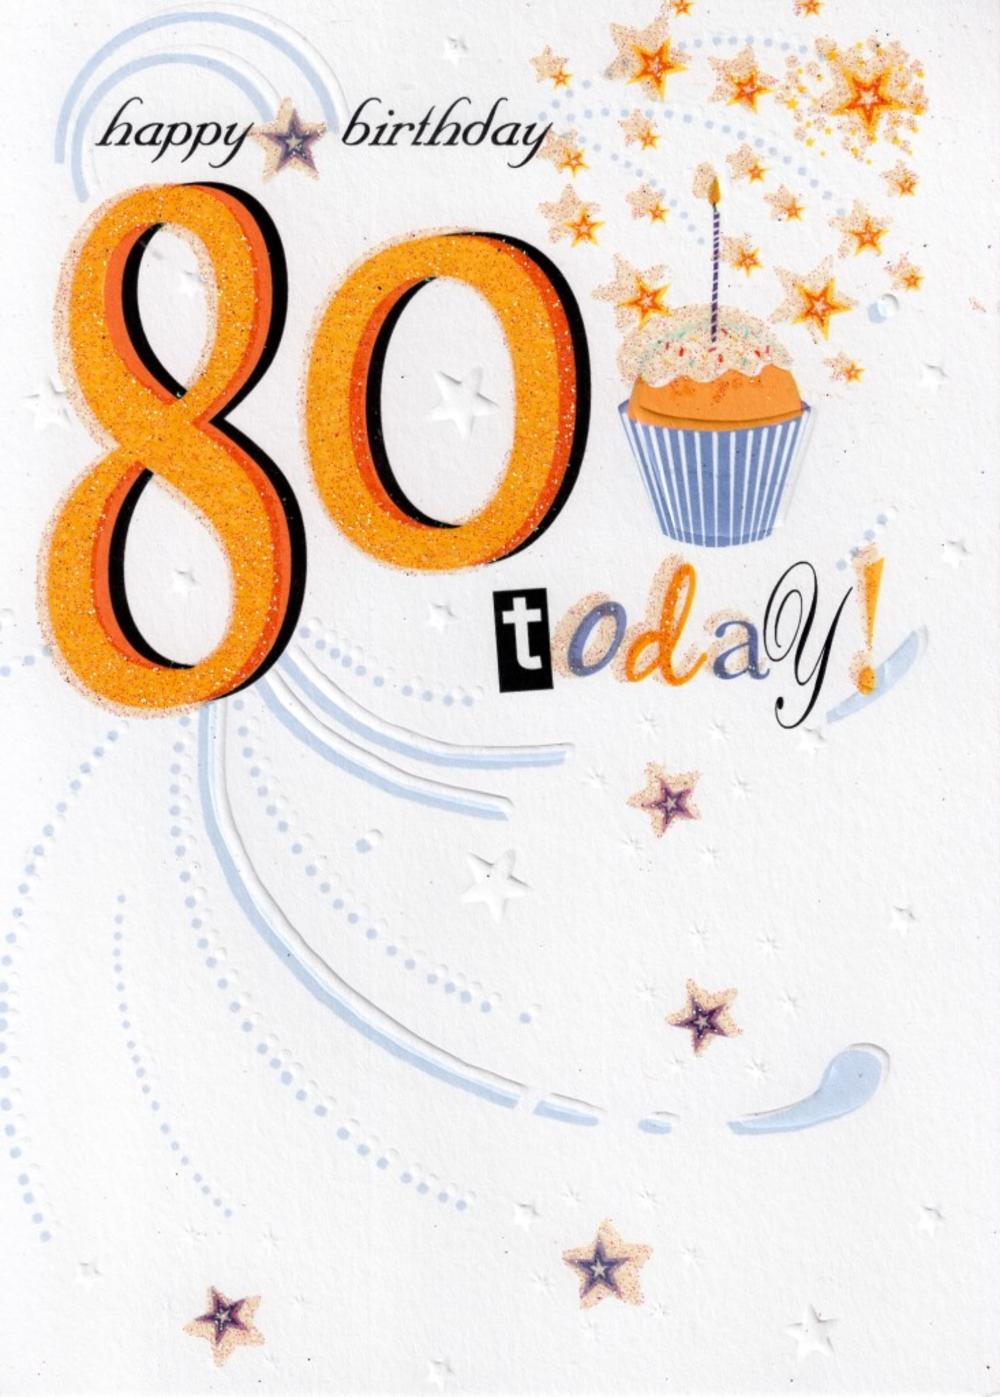 80 today happy 80th birthday card cards love kates 80 today happy 80th birthday card m4hsunfo